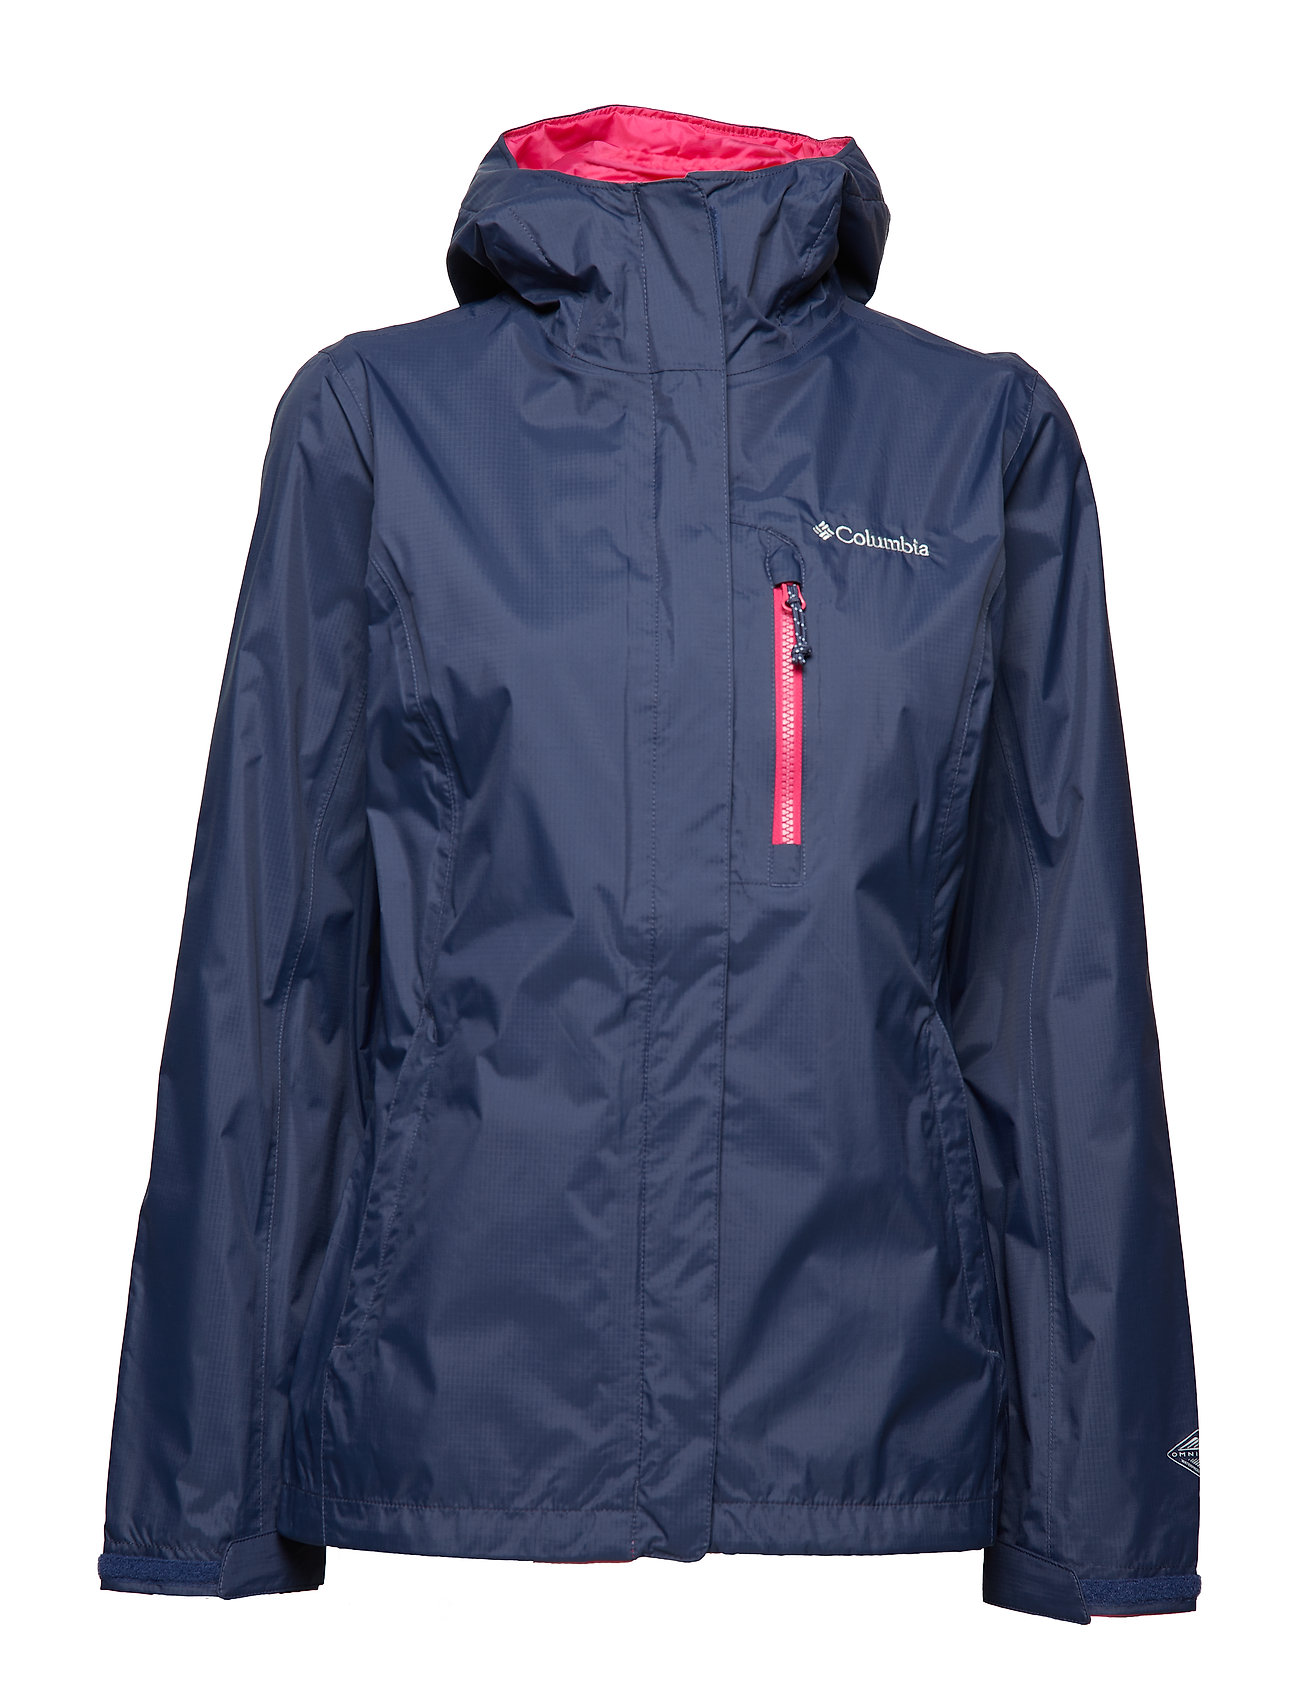 ii Adventure� Adventure� JacketnocturnalColumbia Pouring Pouring vwmOnPy0N8